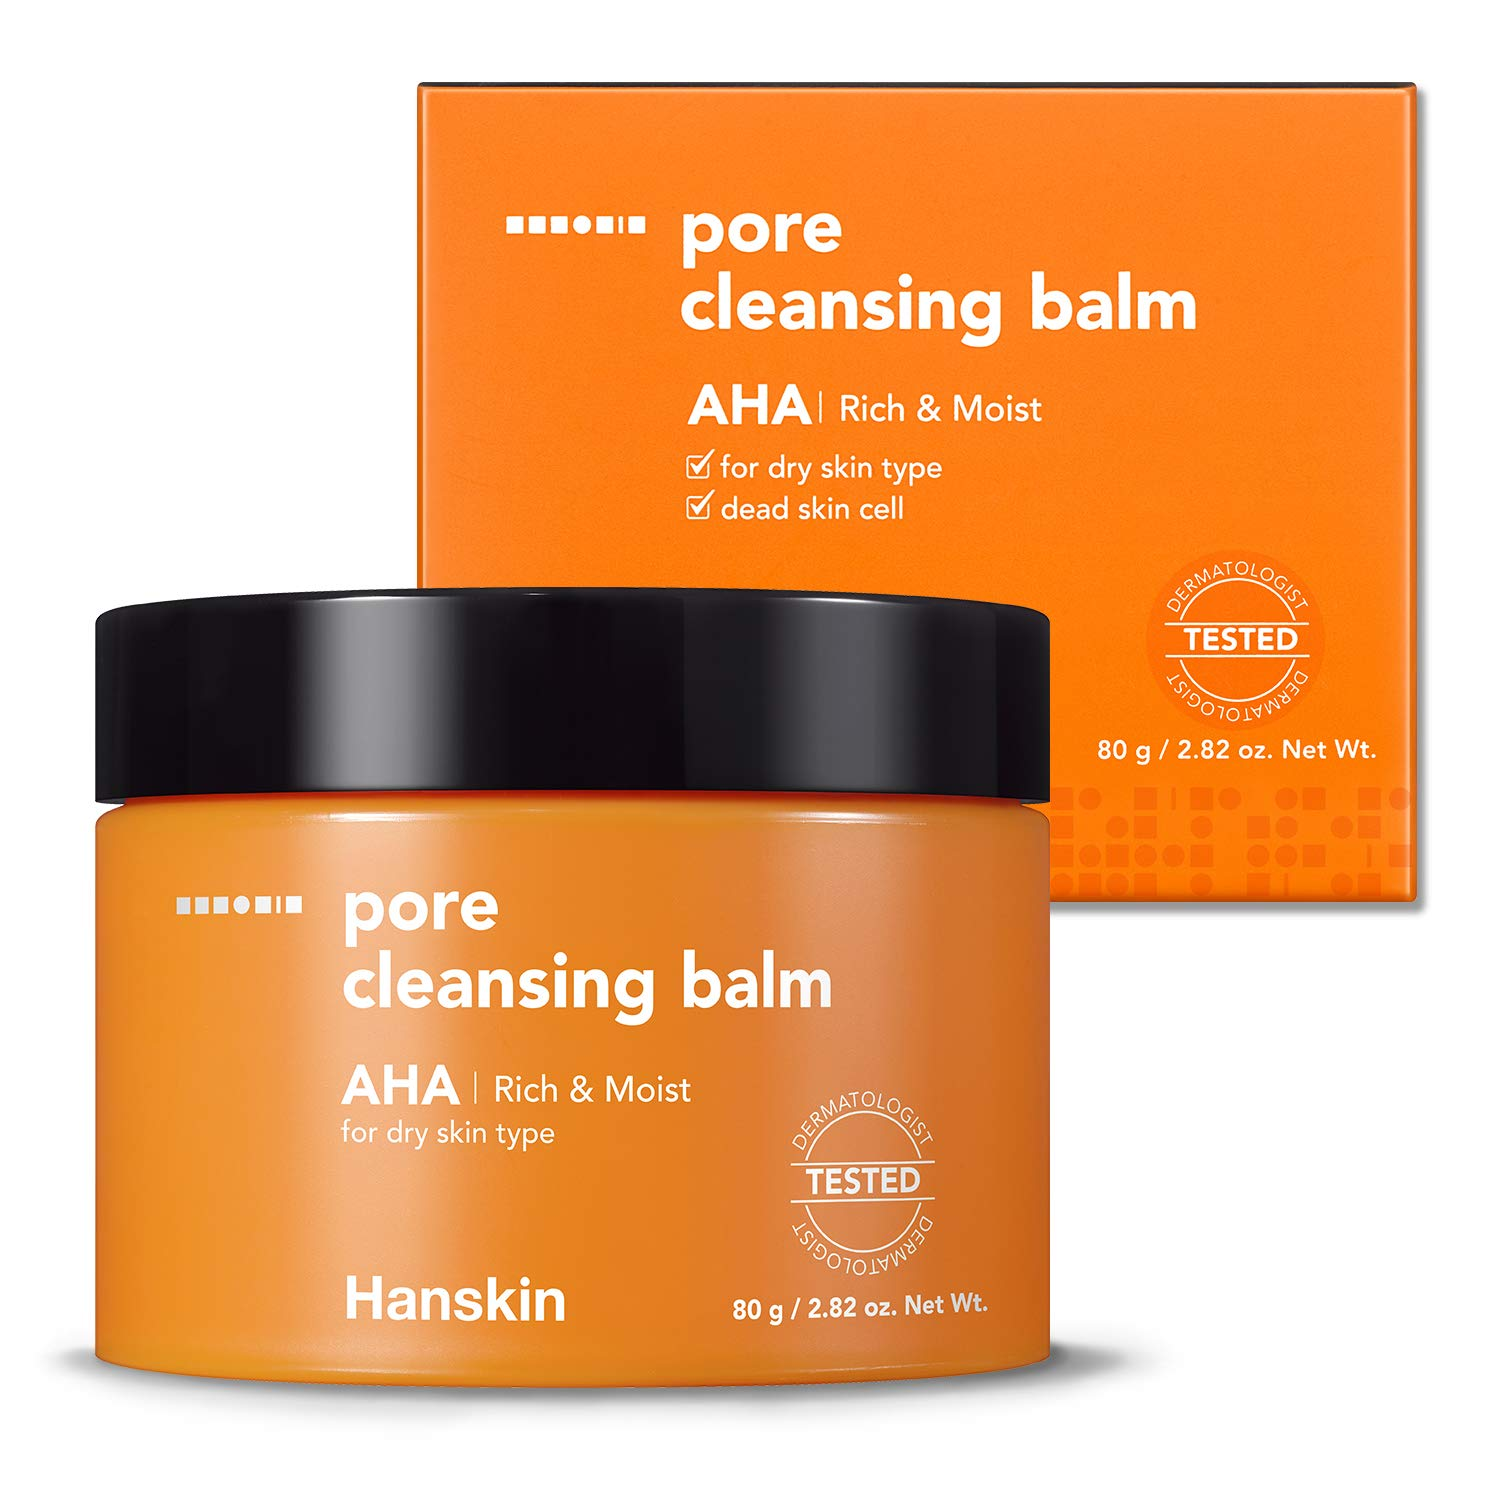 Hanskin AHA Pore Cleansing Balm, Gentle Blackhead Cleanser and Makeup Remover for Dry Skin - Official 2019 Exclusive USA Exported Version [AHA/2.82 oz]